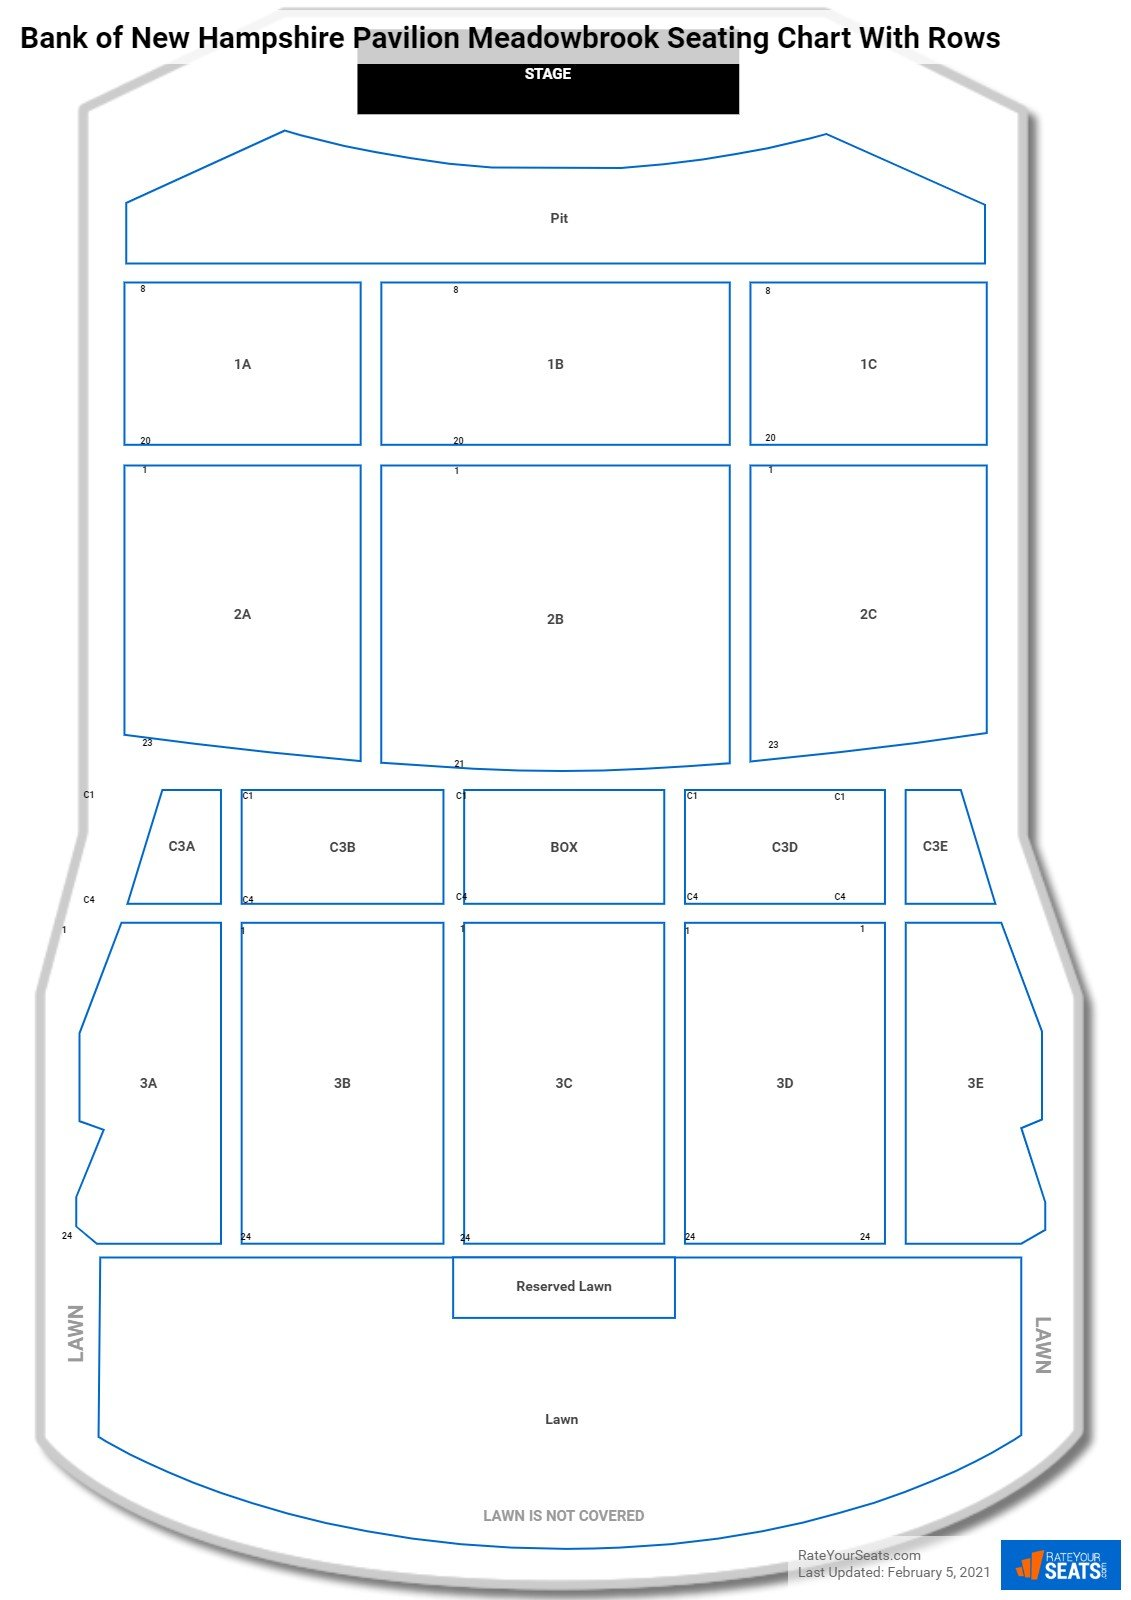 Bank of New Hampshire Pavilion Meadowbrook seating chart with rows